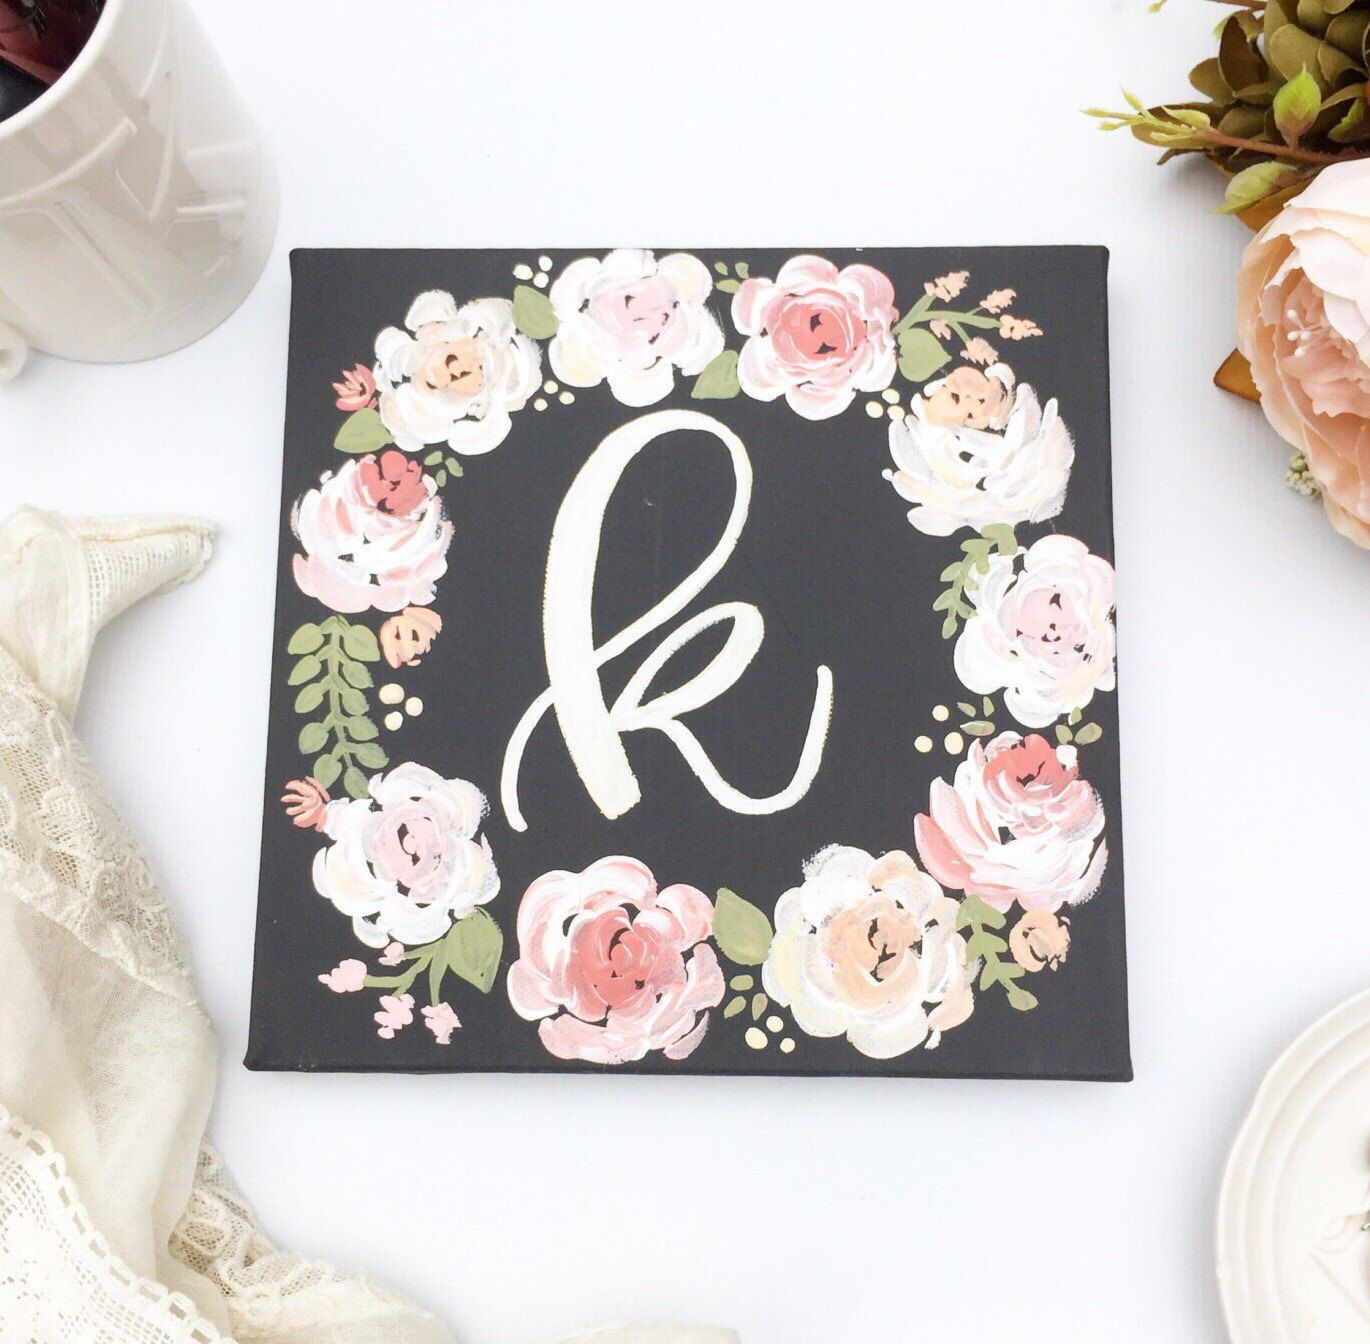 Diy Baby Nursery Floral Wall Decor: Personalized Home Decor / Nursery Decor / Florals / Floral